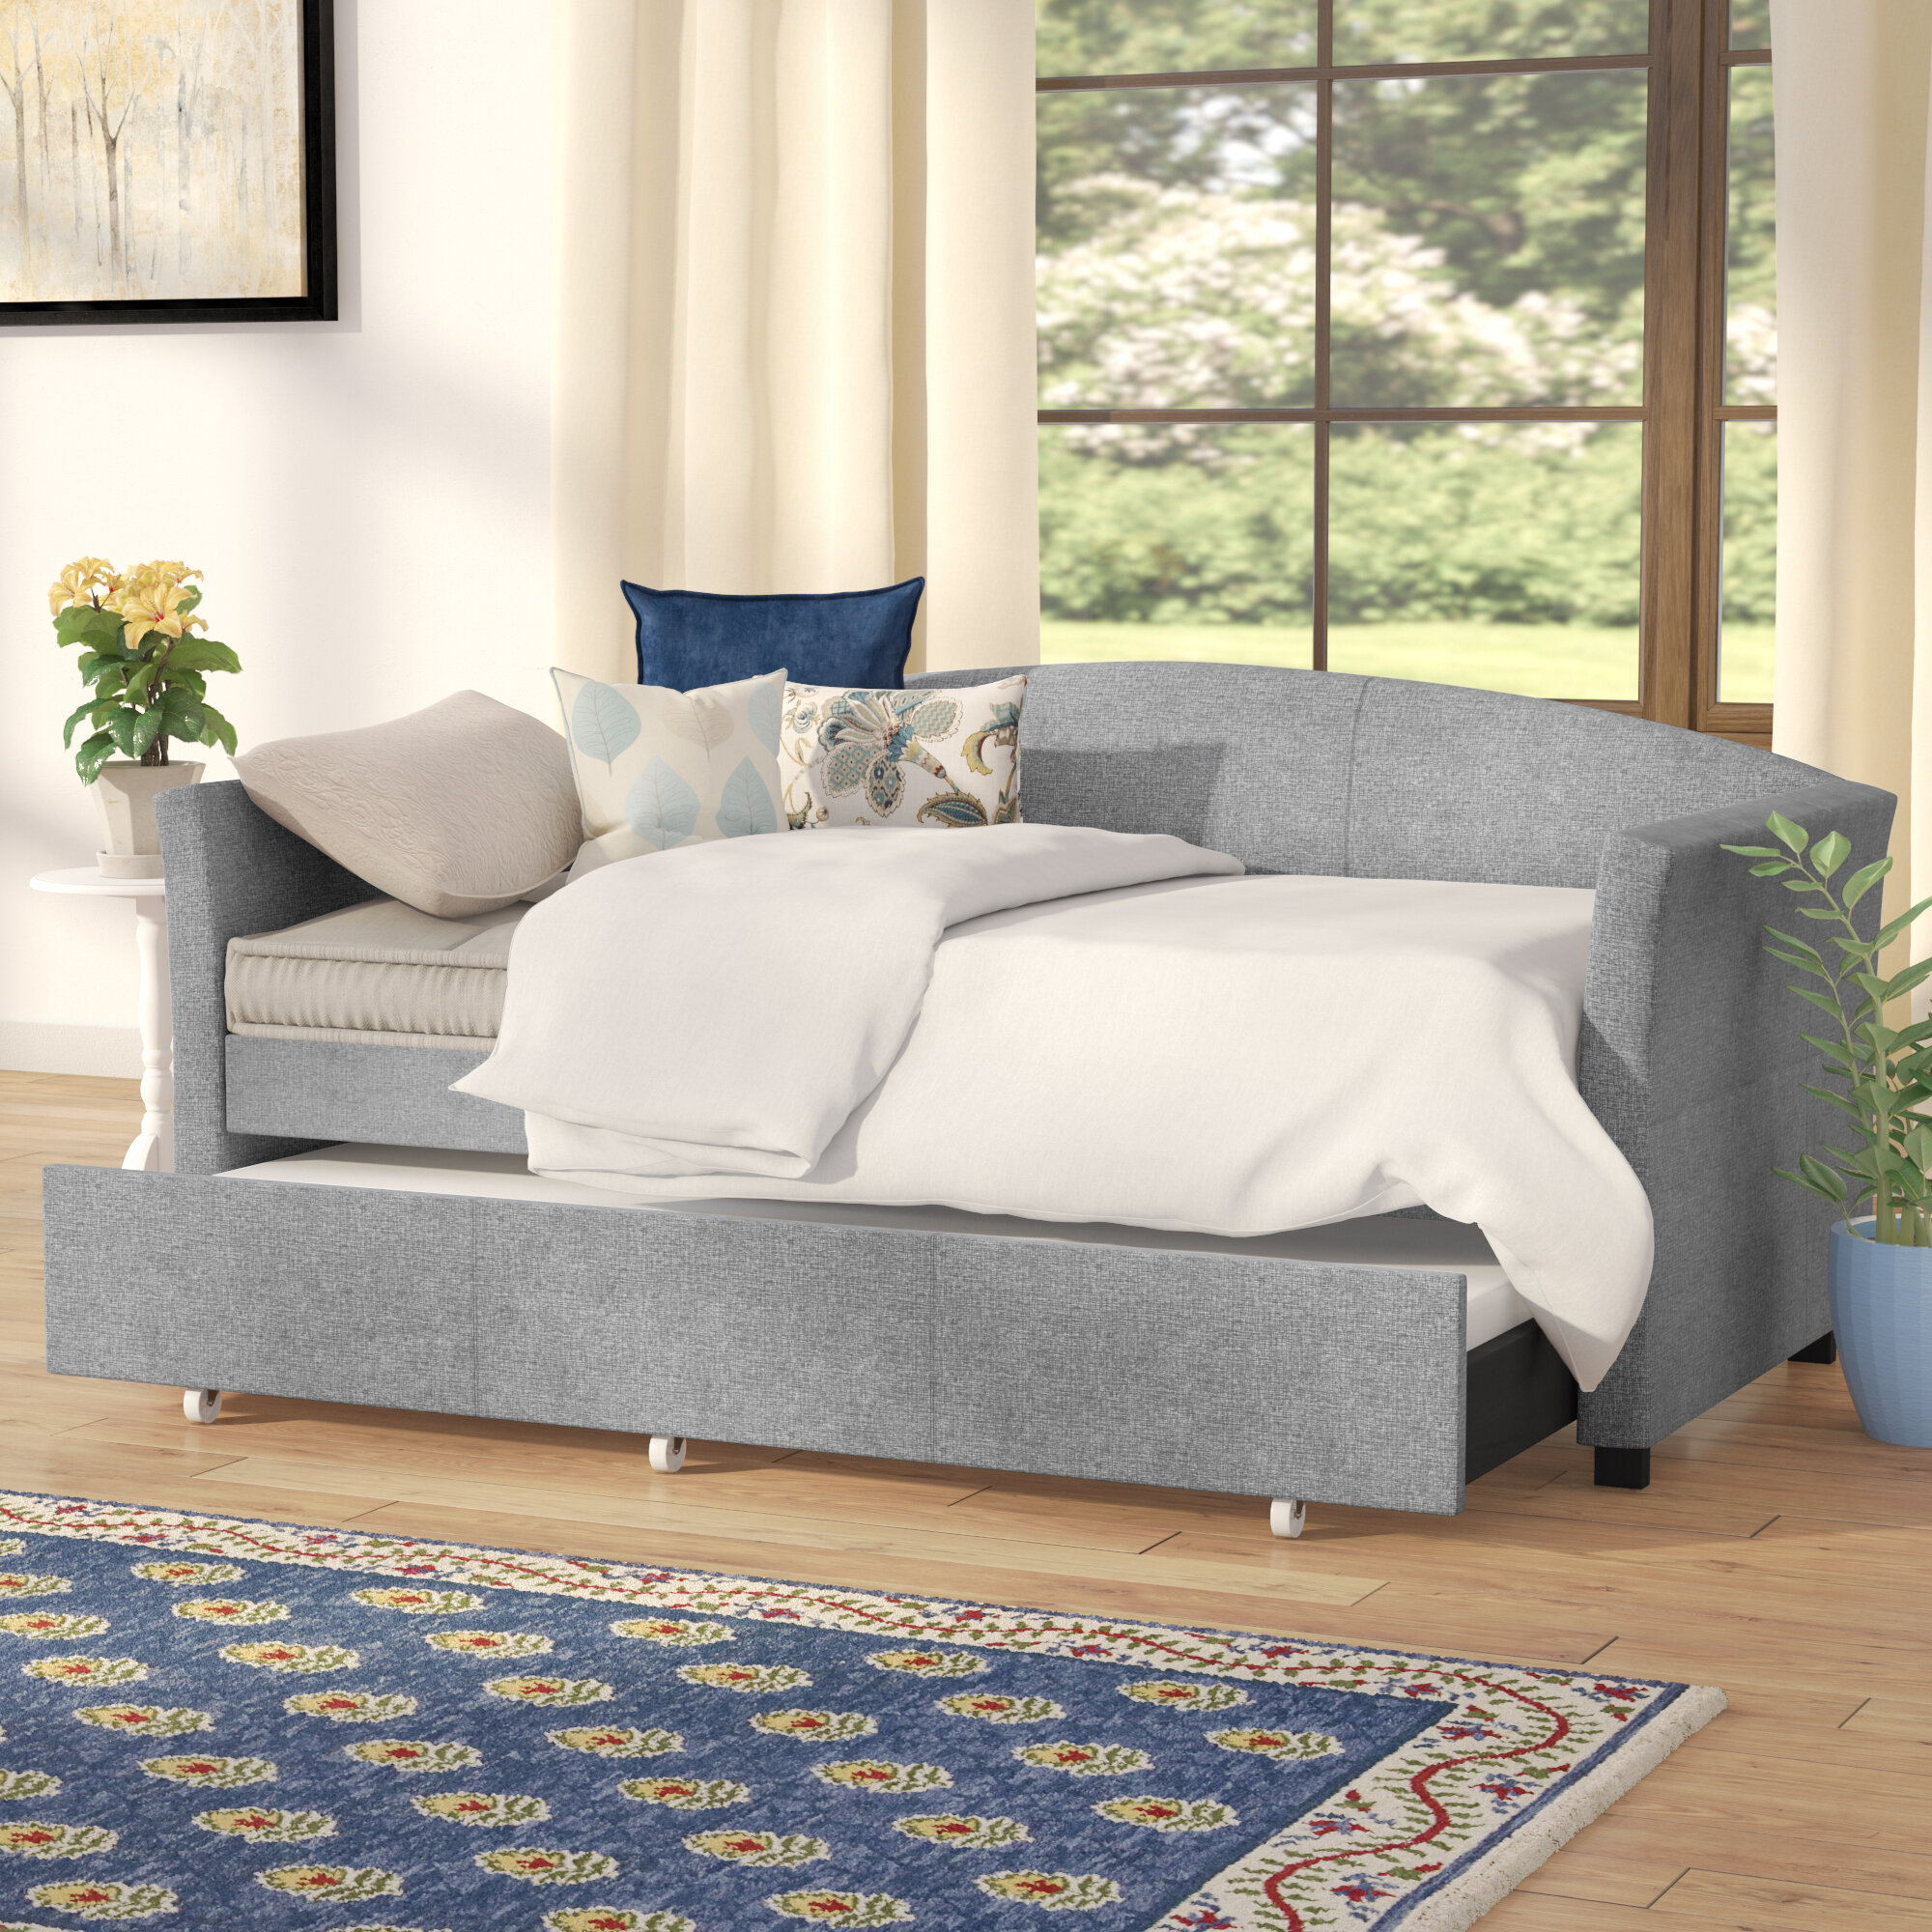 Delightful Sofa With Trundle #18 - Trundle Couch | Wayfair